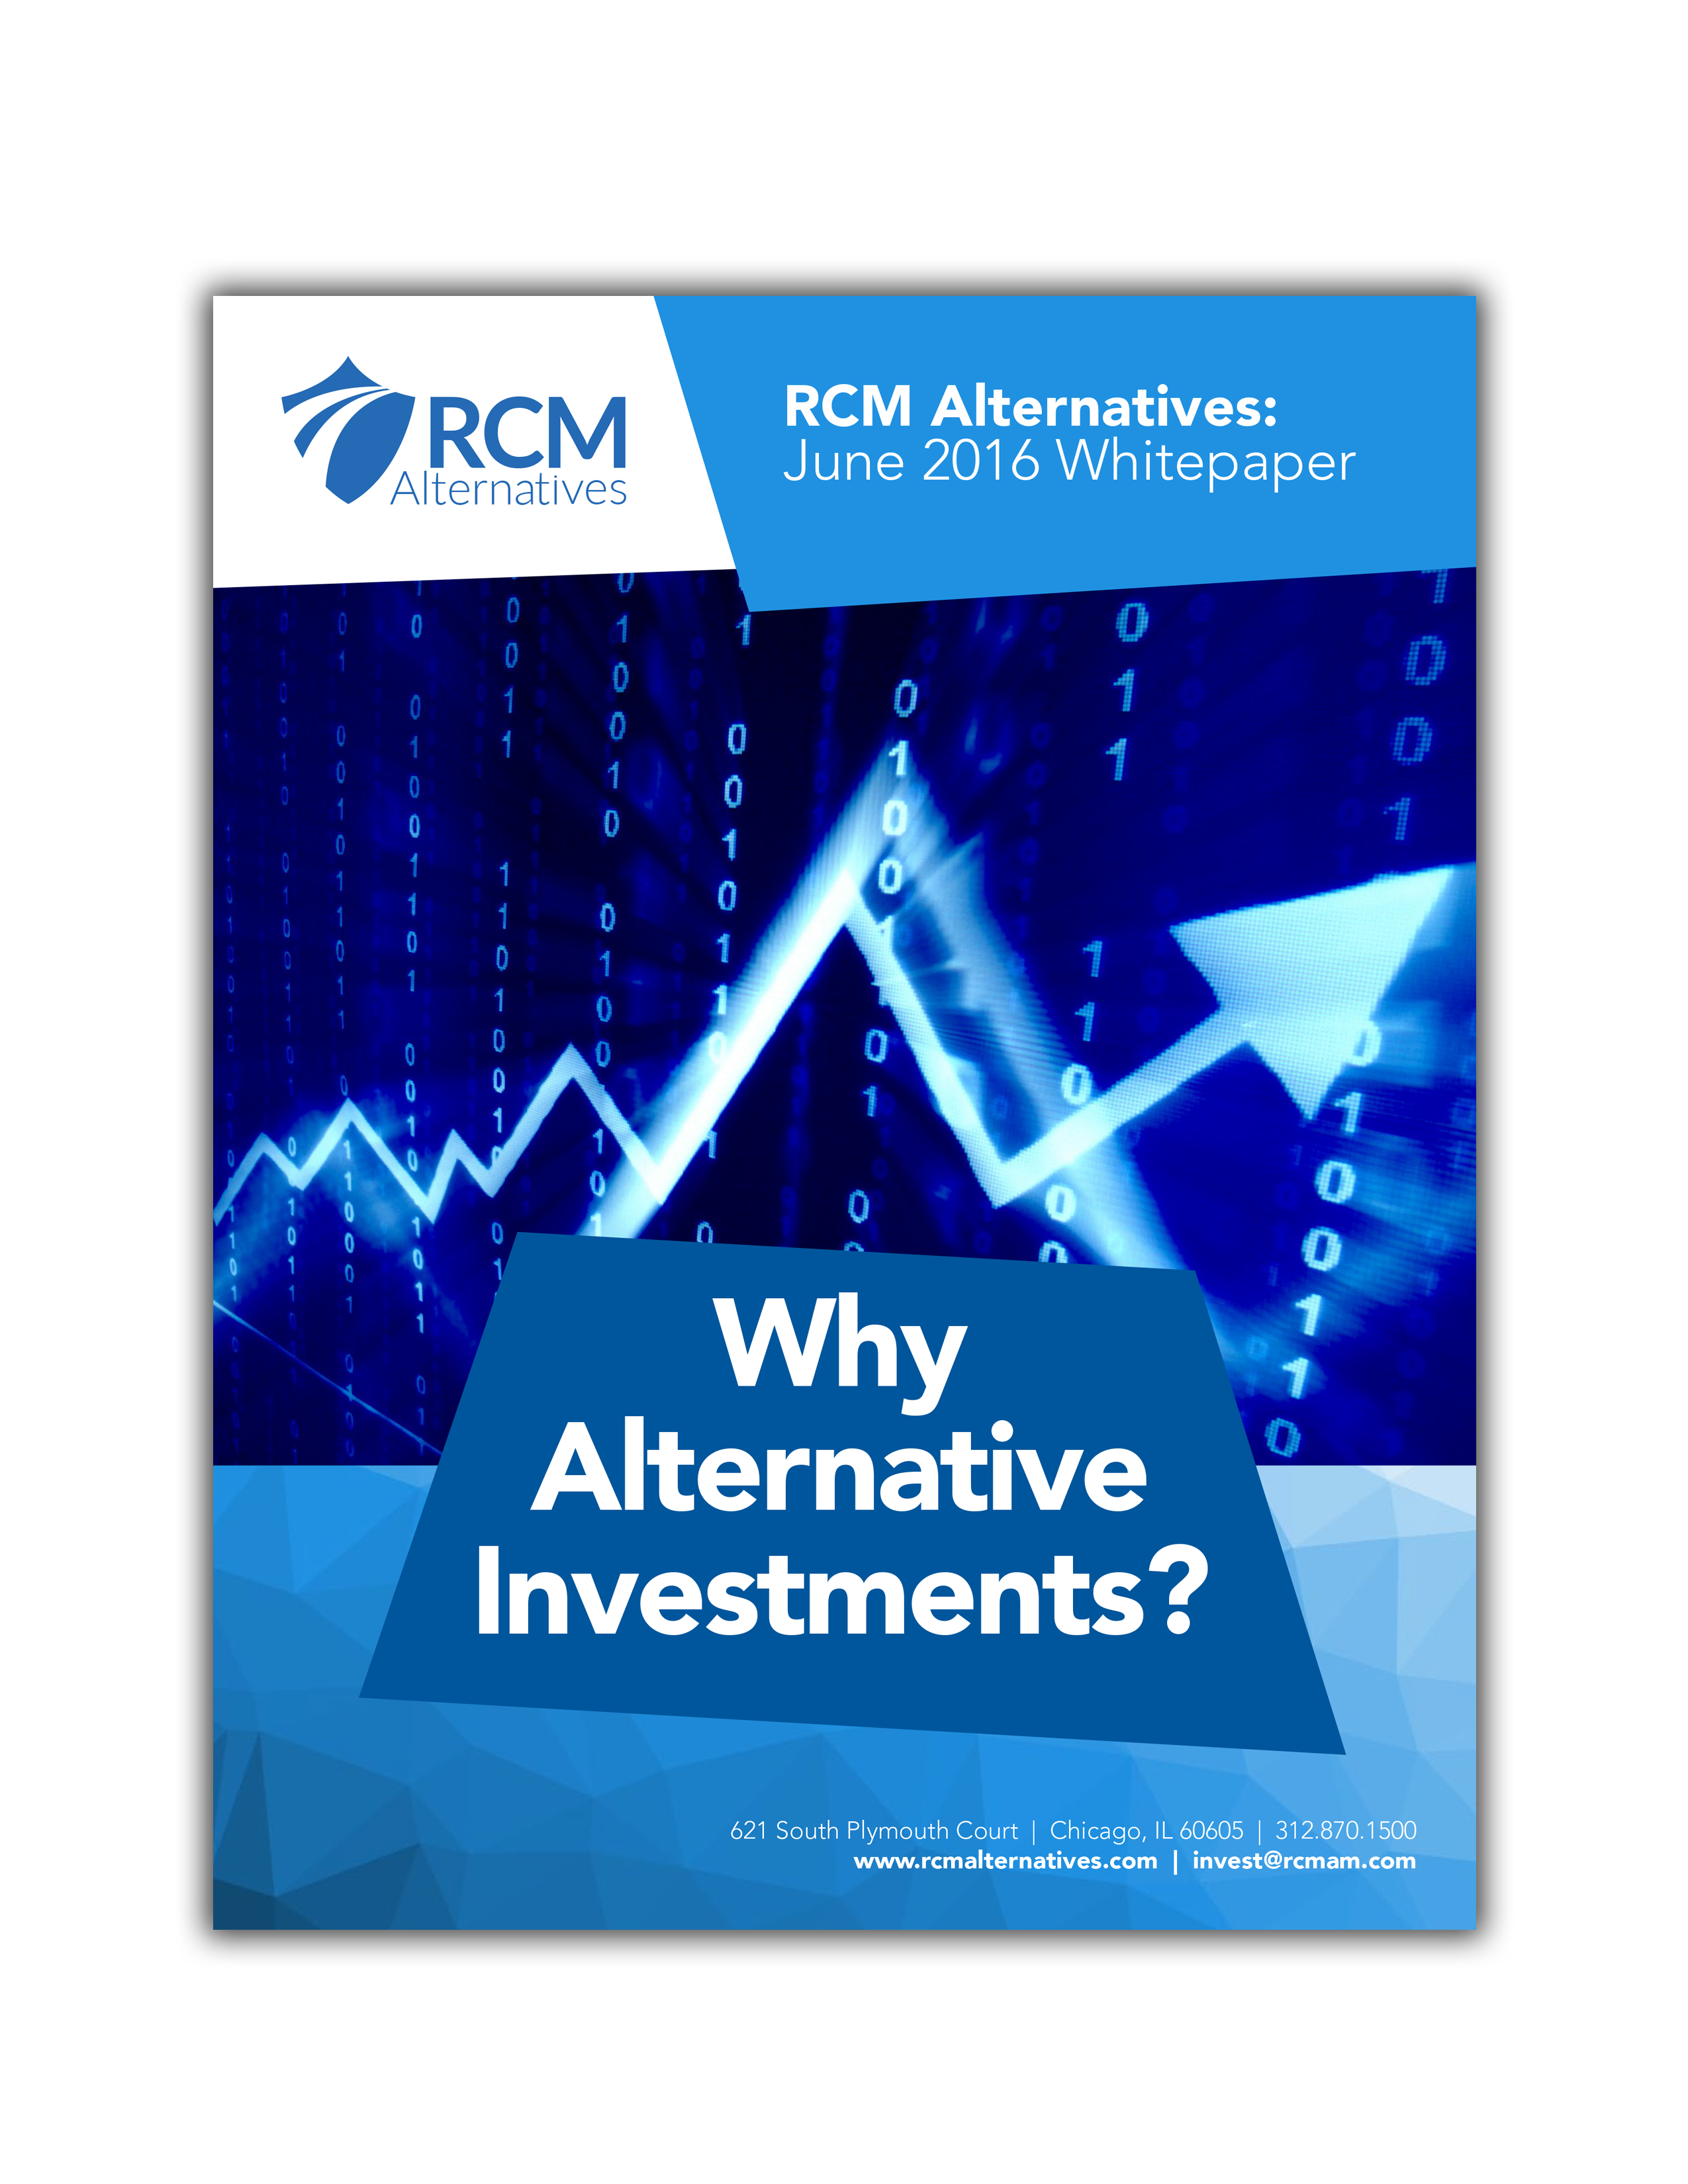 WHY ALTERNATIVE INVESTMENTS